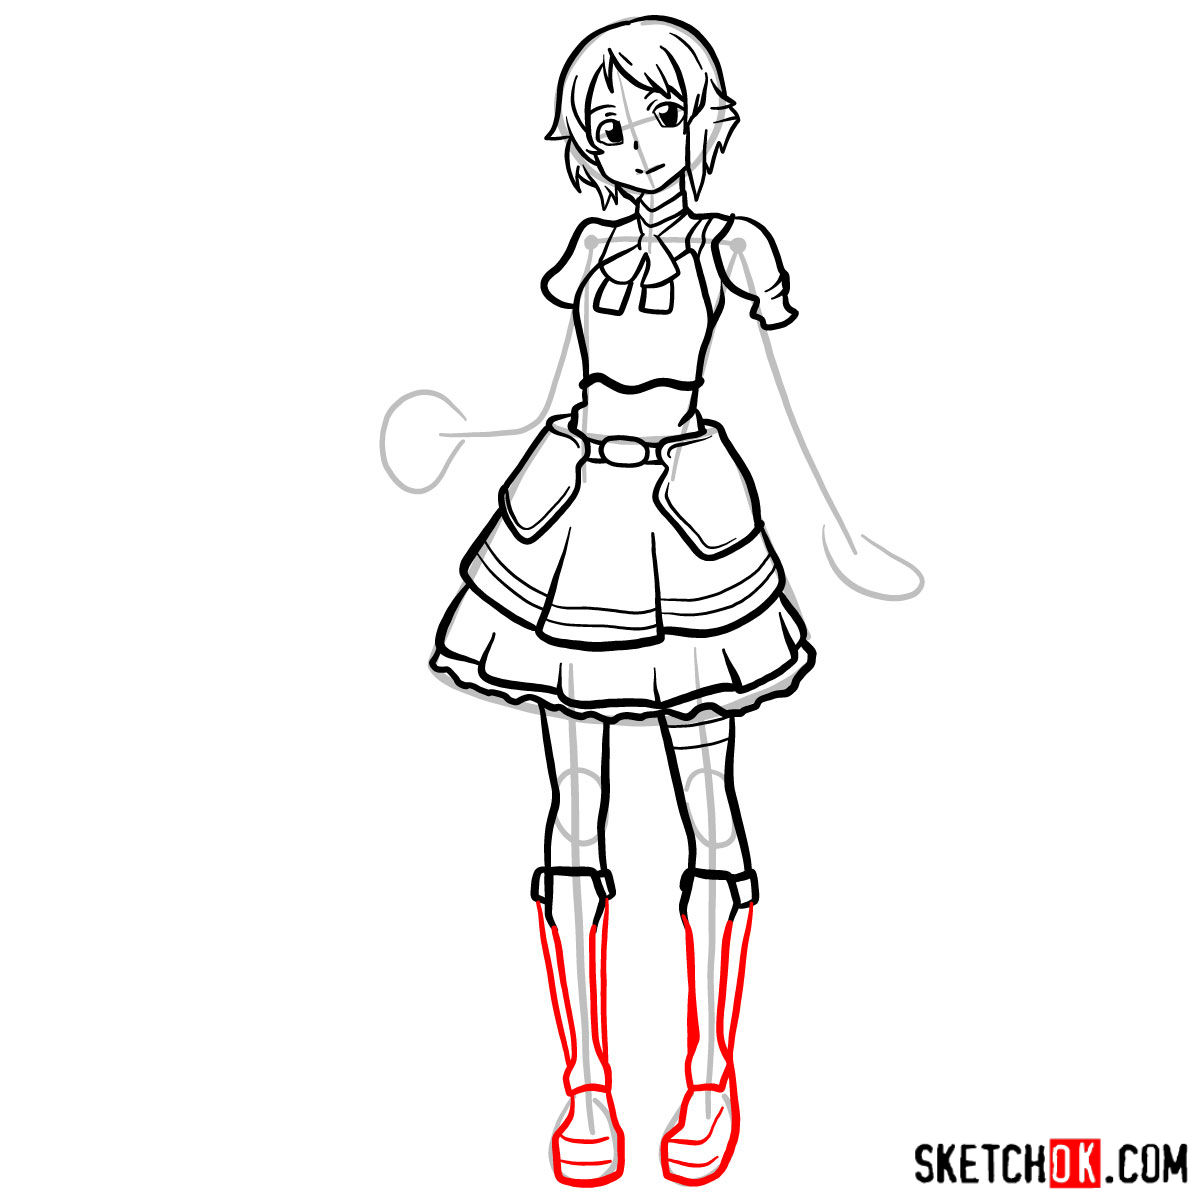 How to draw Lisbeth from Sword Art Online - step 12